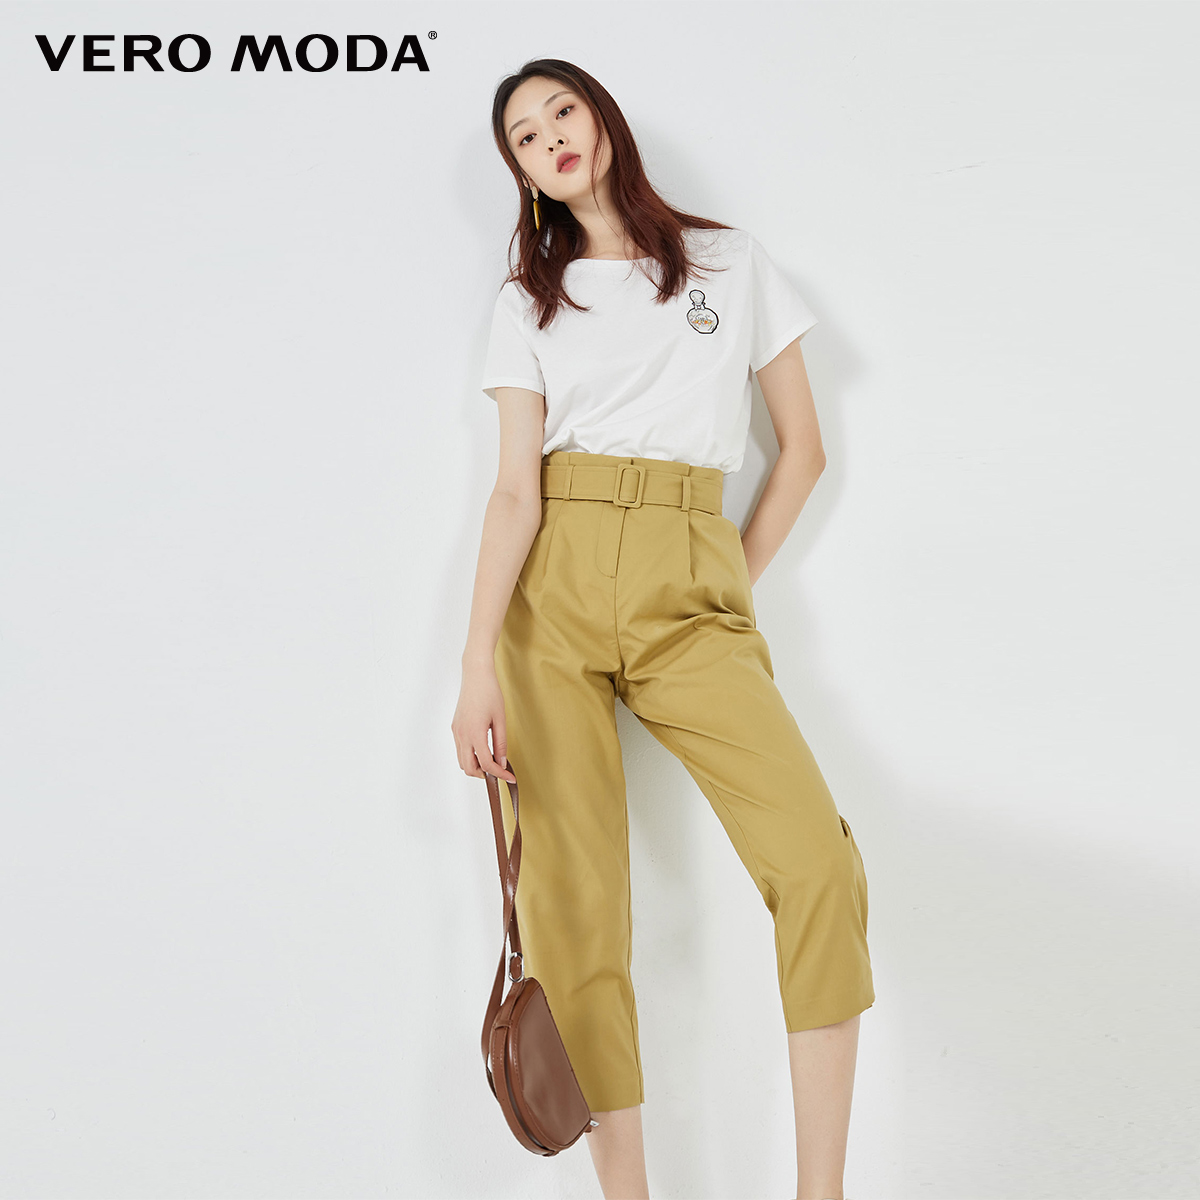 Vero moda2020 autumn new work clothes wind net red show thin casual pants women 32036j016